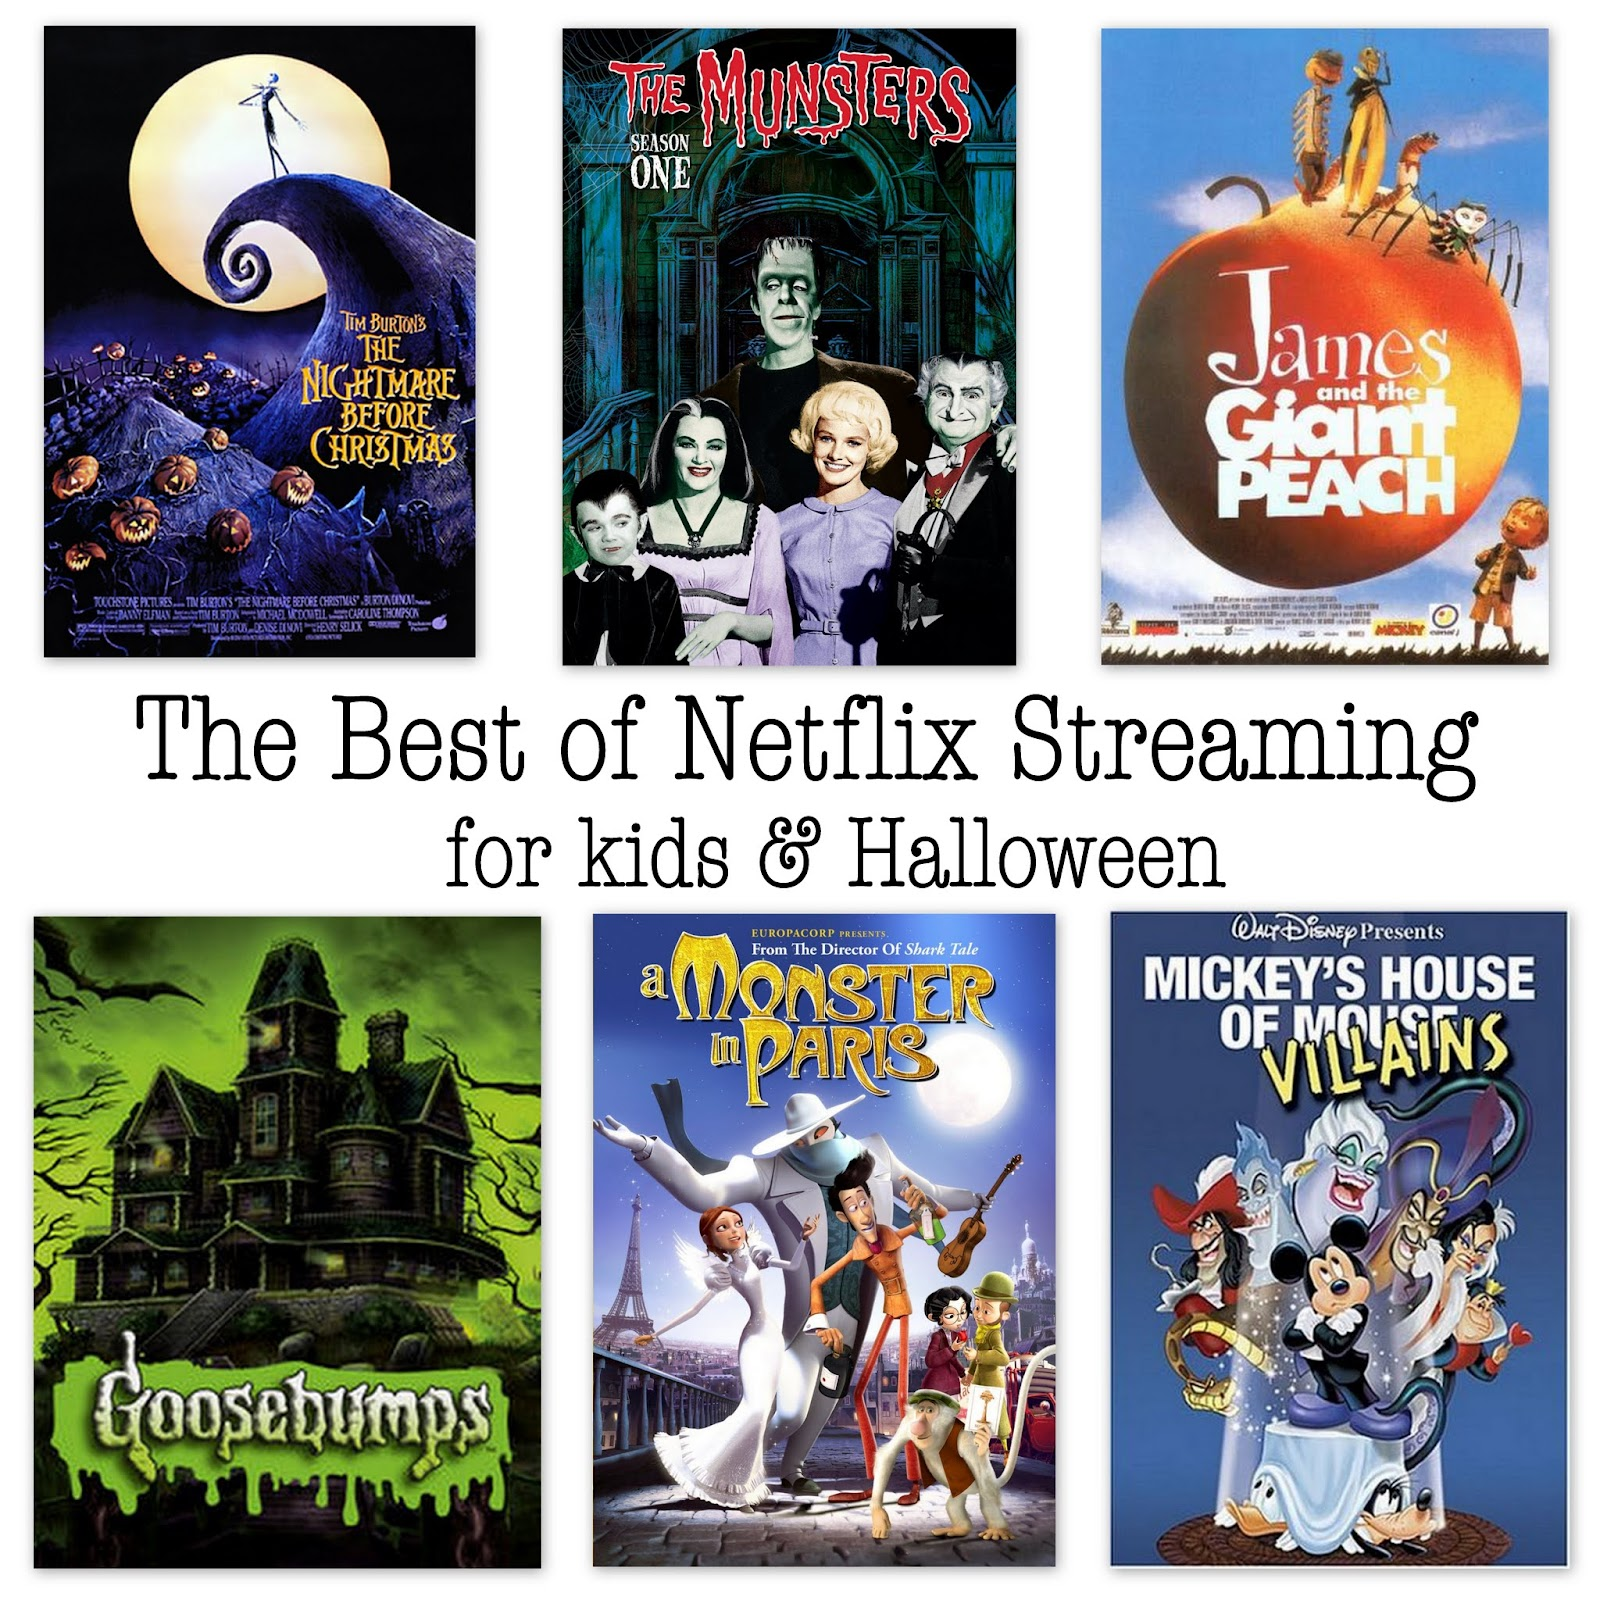 20 Halloween Movies for Kids to Watch This Spooky Season